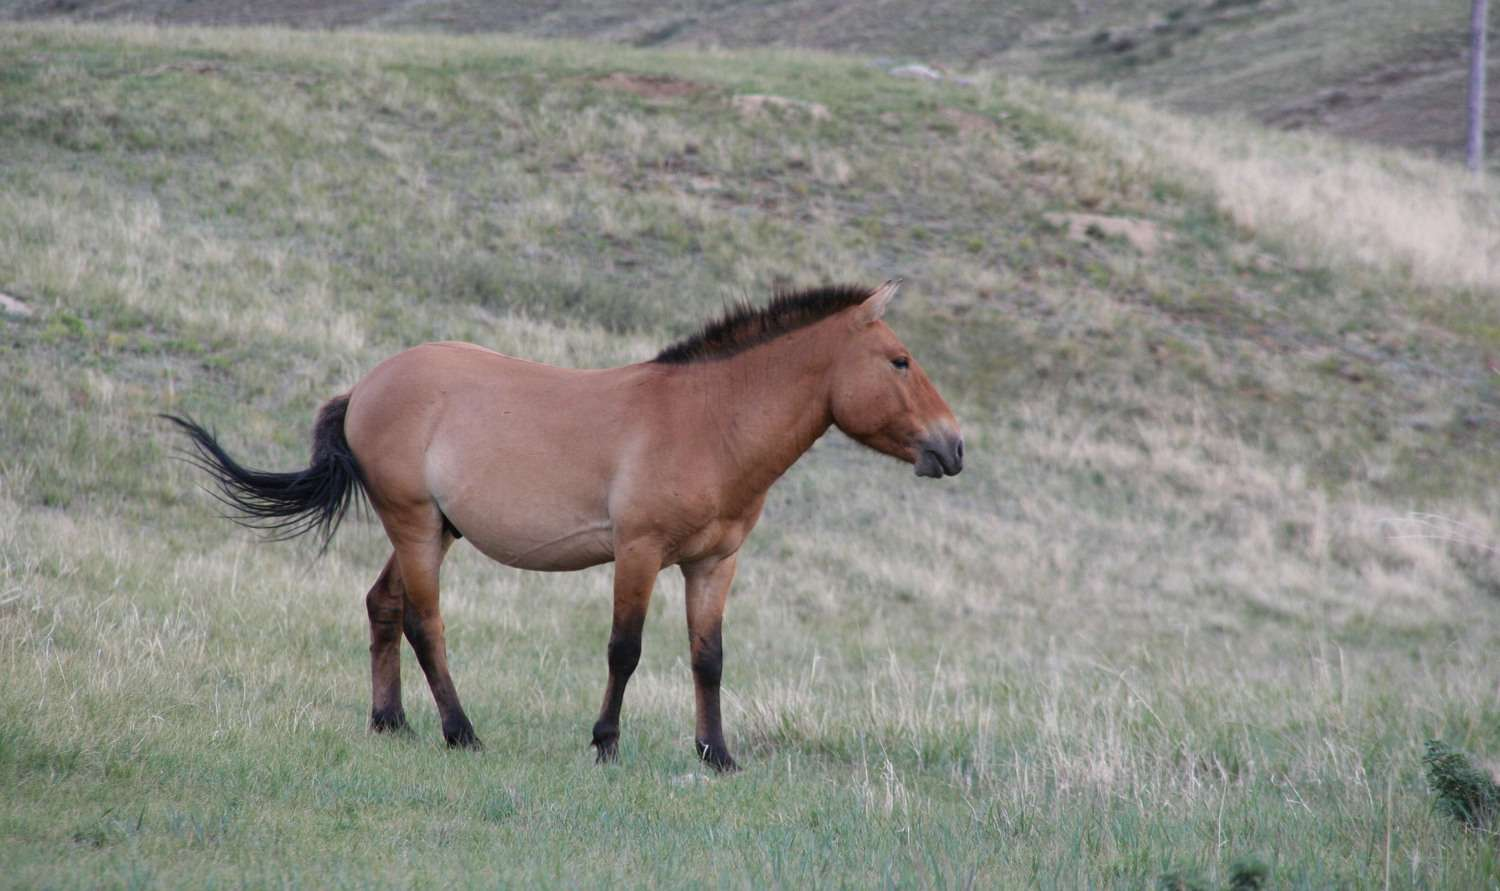 A brown Przewalski's horse standing on a grassy hill in Hustain Nuruu National Park.